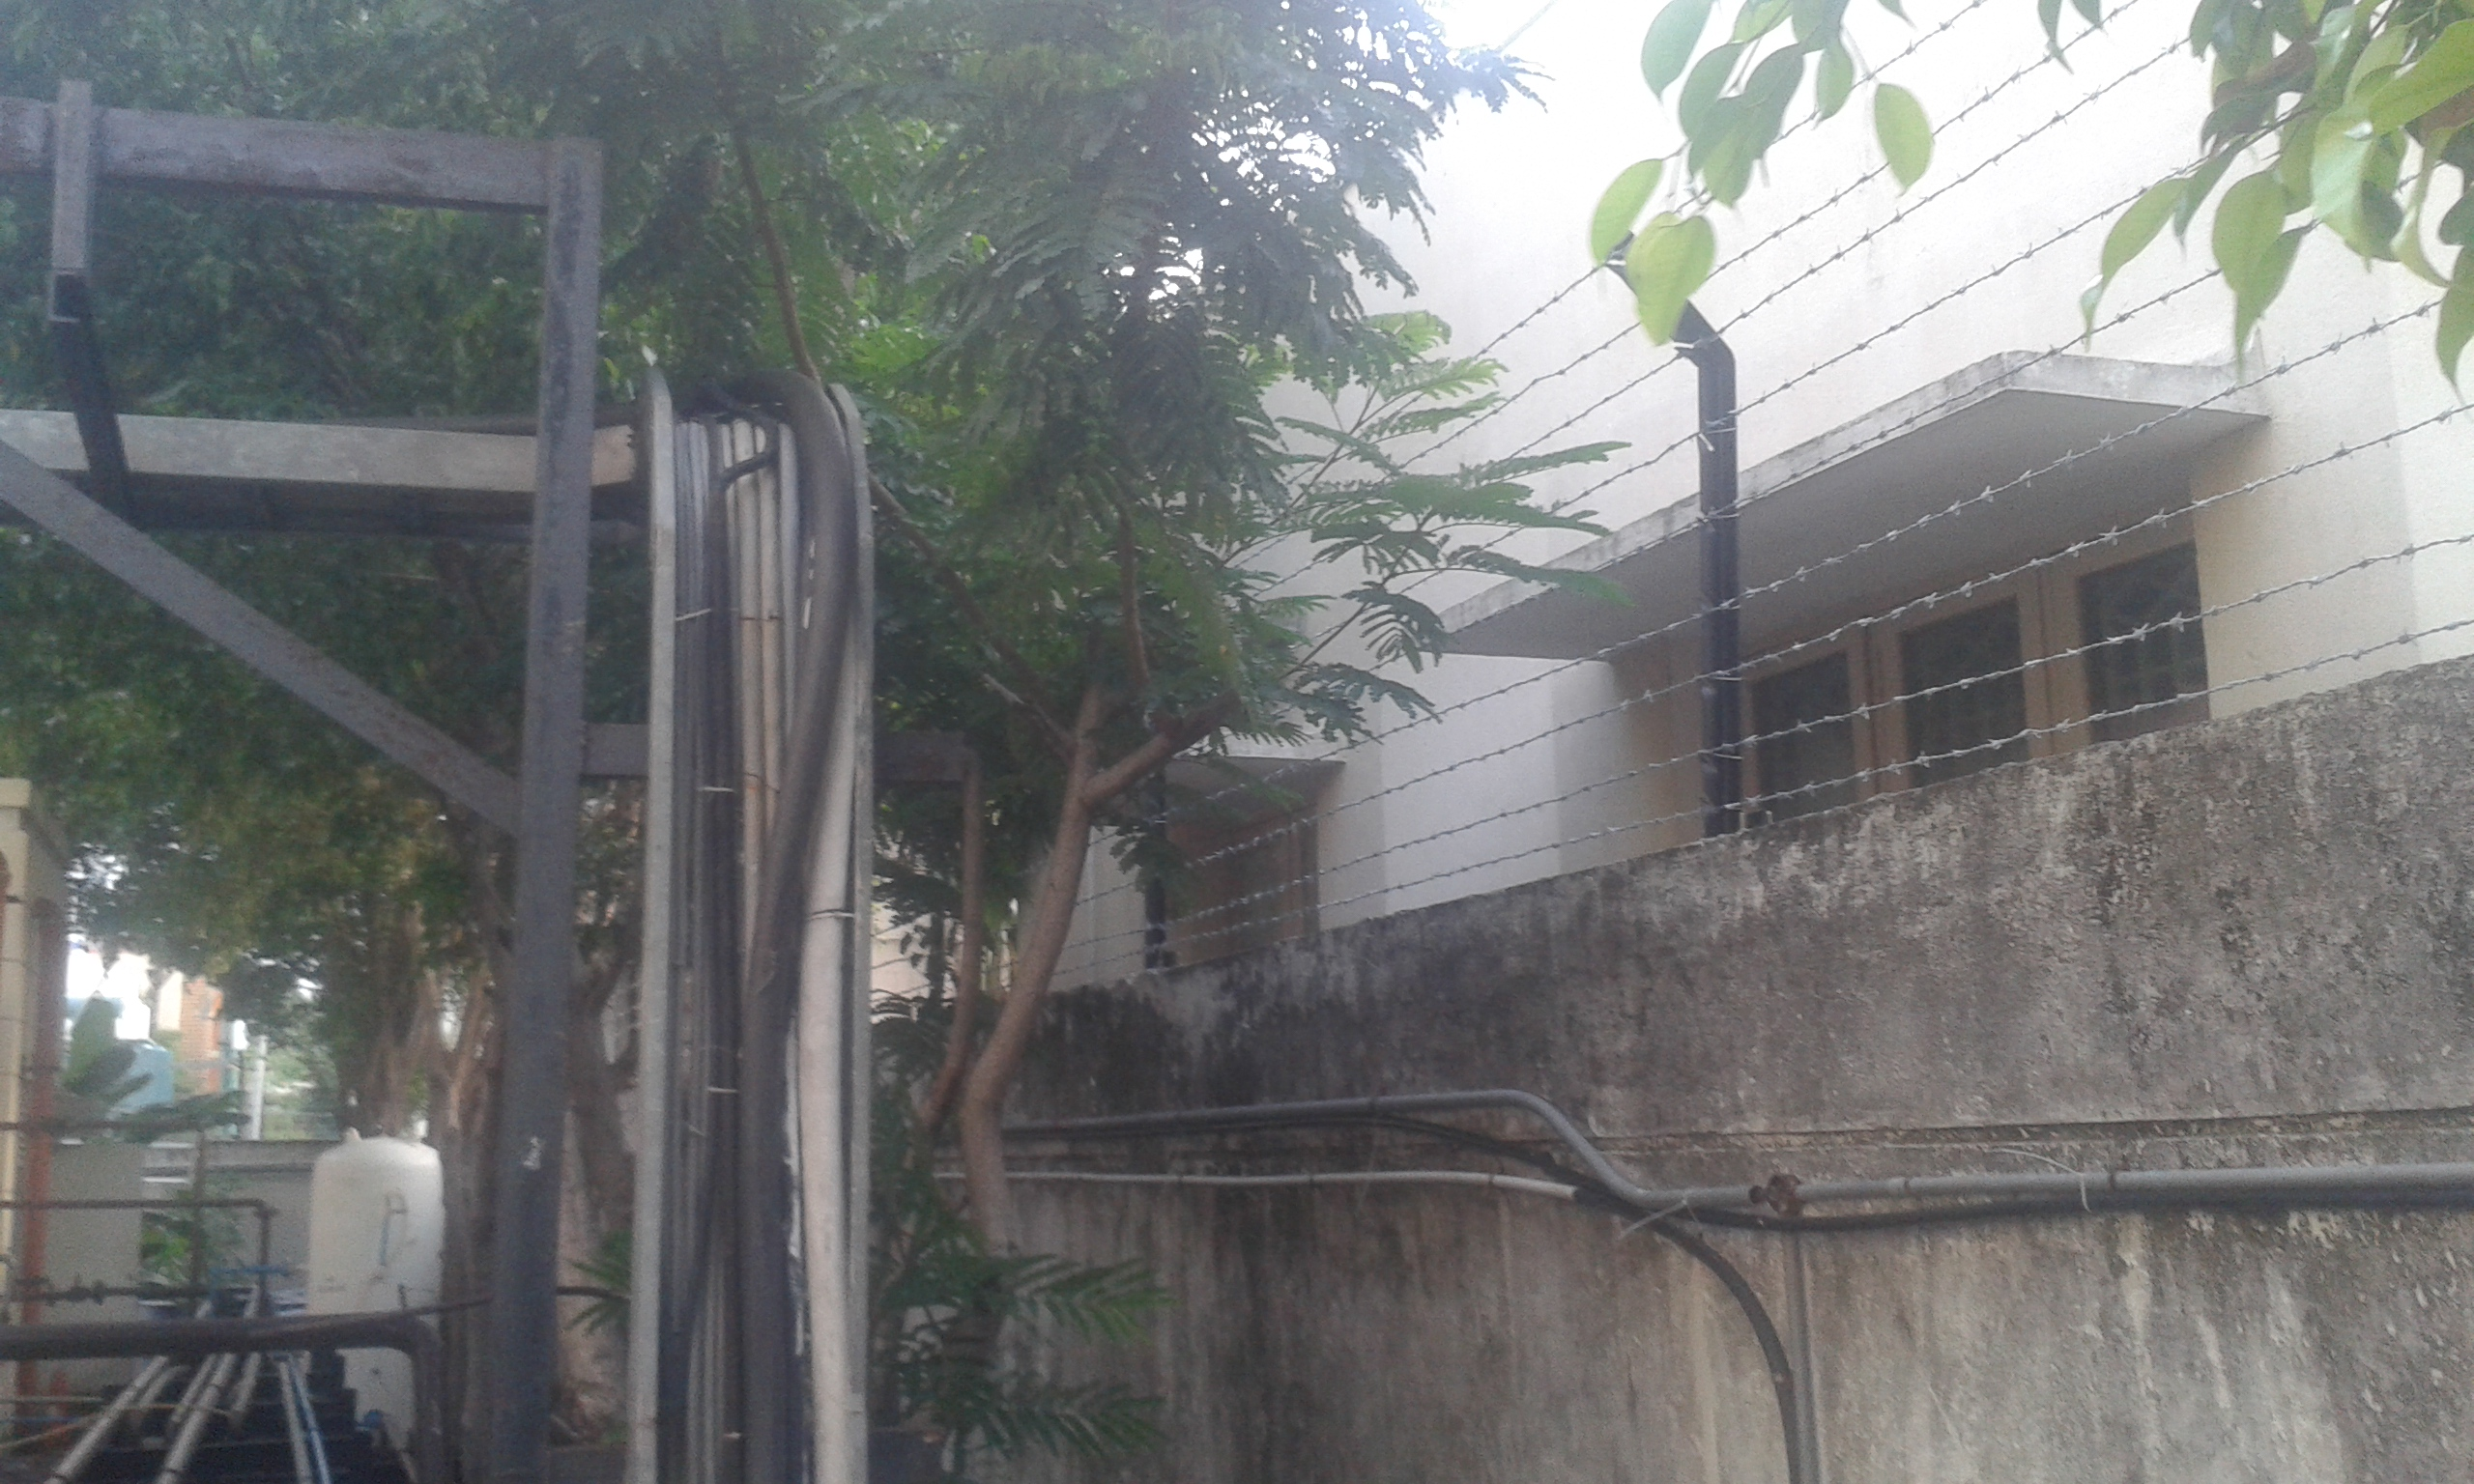 2. Finishing of fencing work